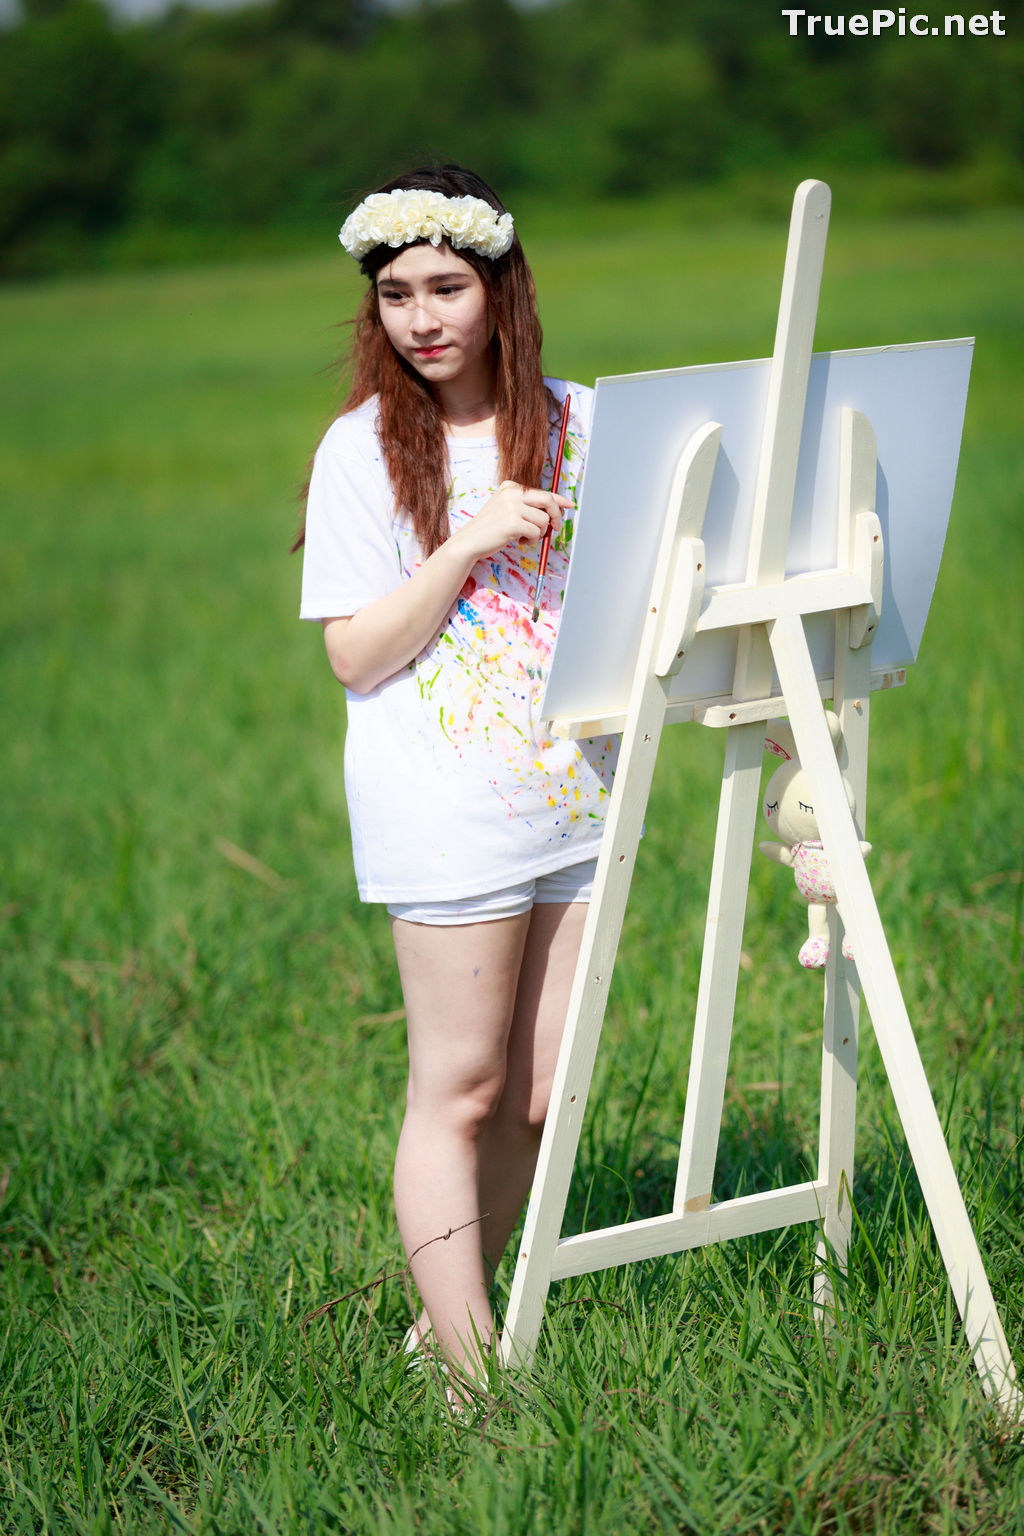 Image Vietnamese Model - How To Beautiful Angel Become An Painter - TruePic.net - Picture-4